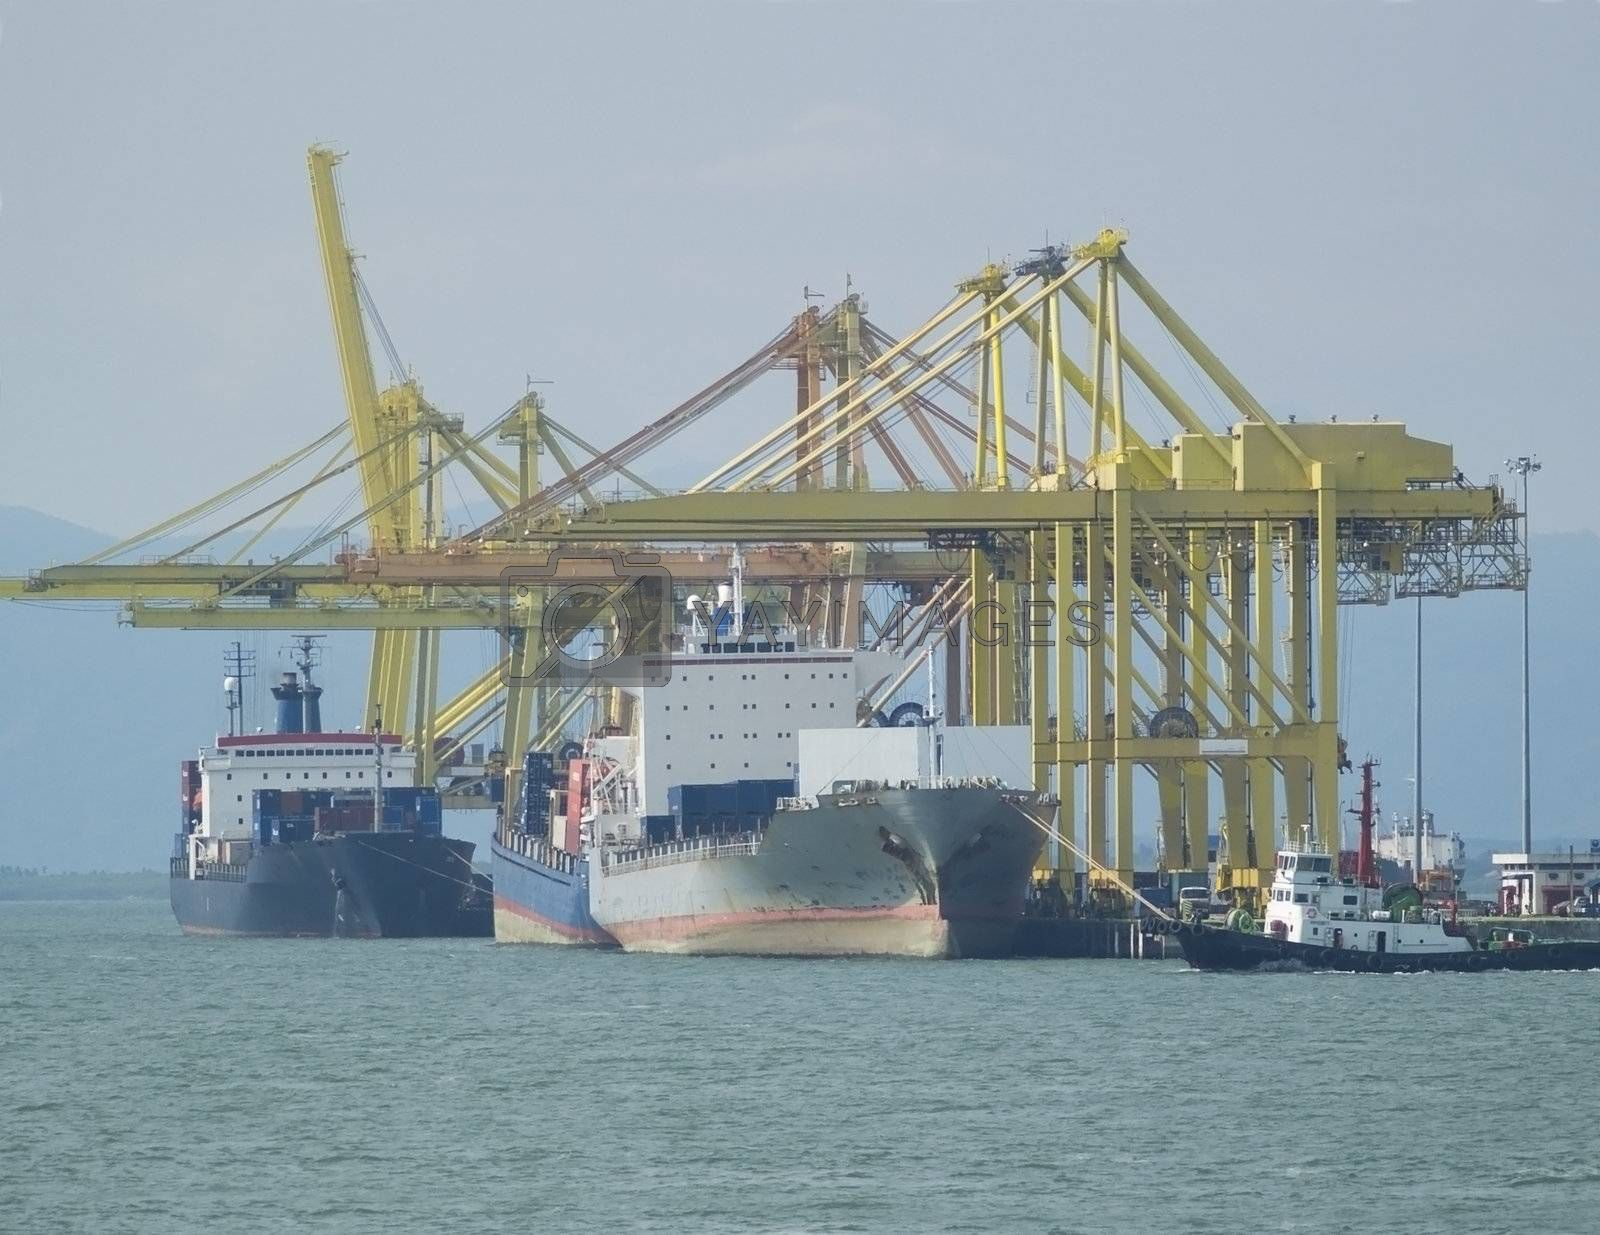 Container ships at harbour by epixx